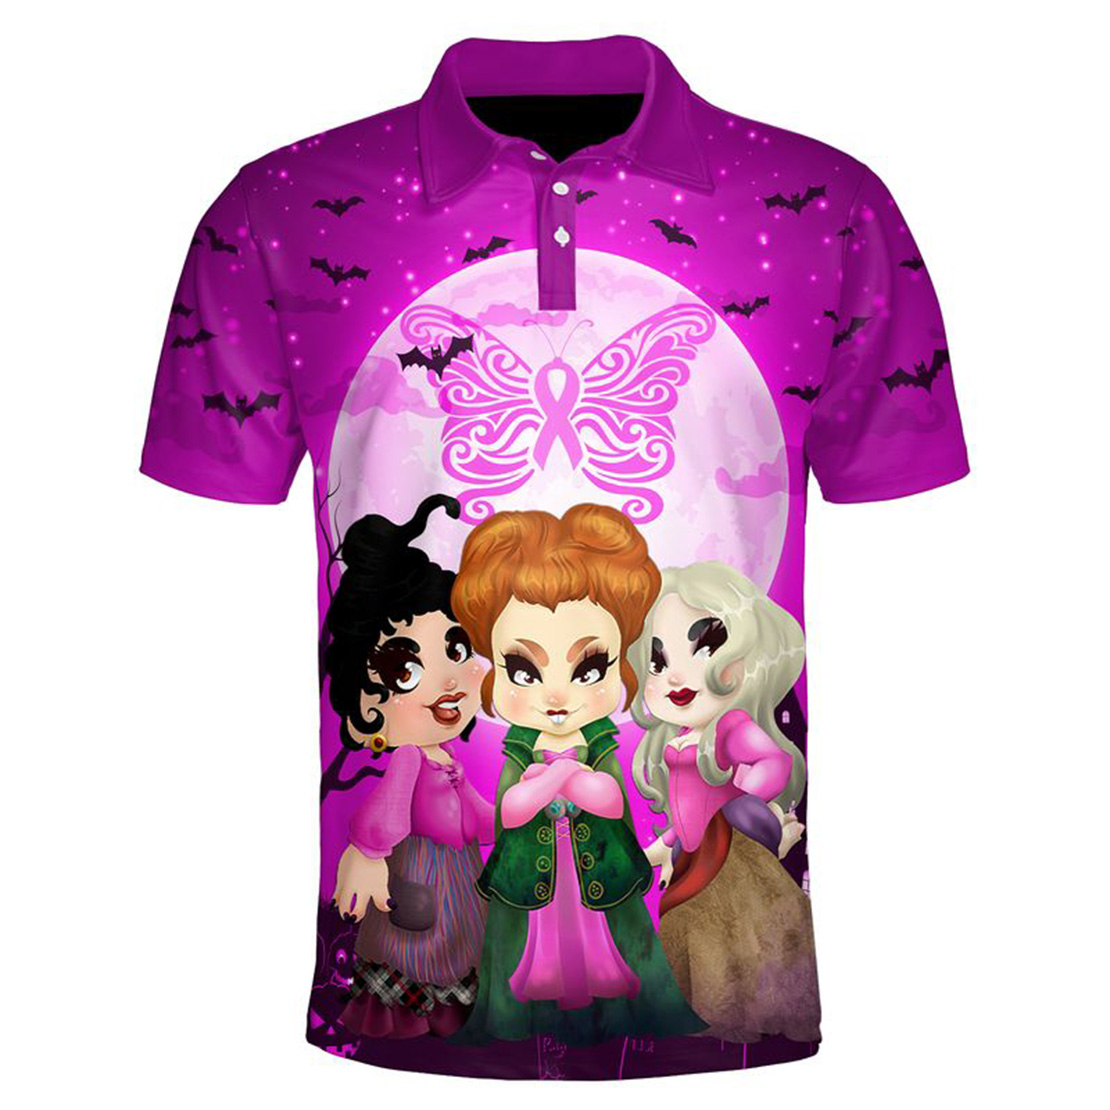 Hocus pocus happy halloween butterfly breast cancer 3d polo shirt